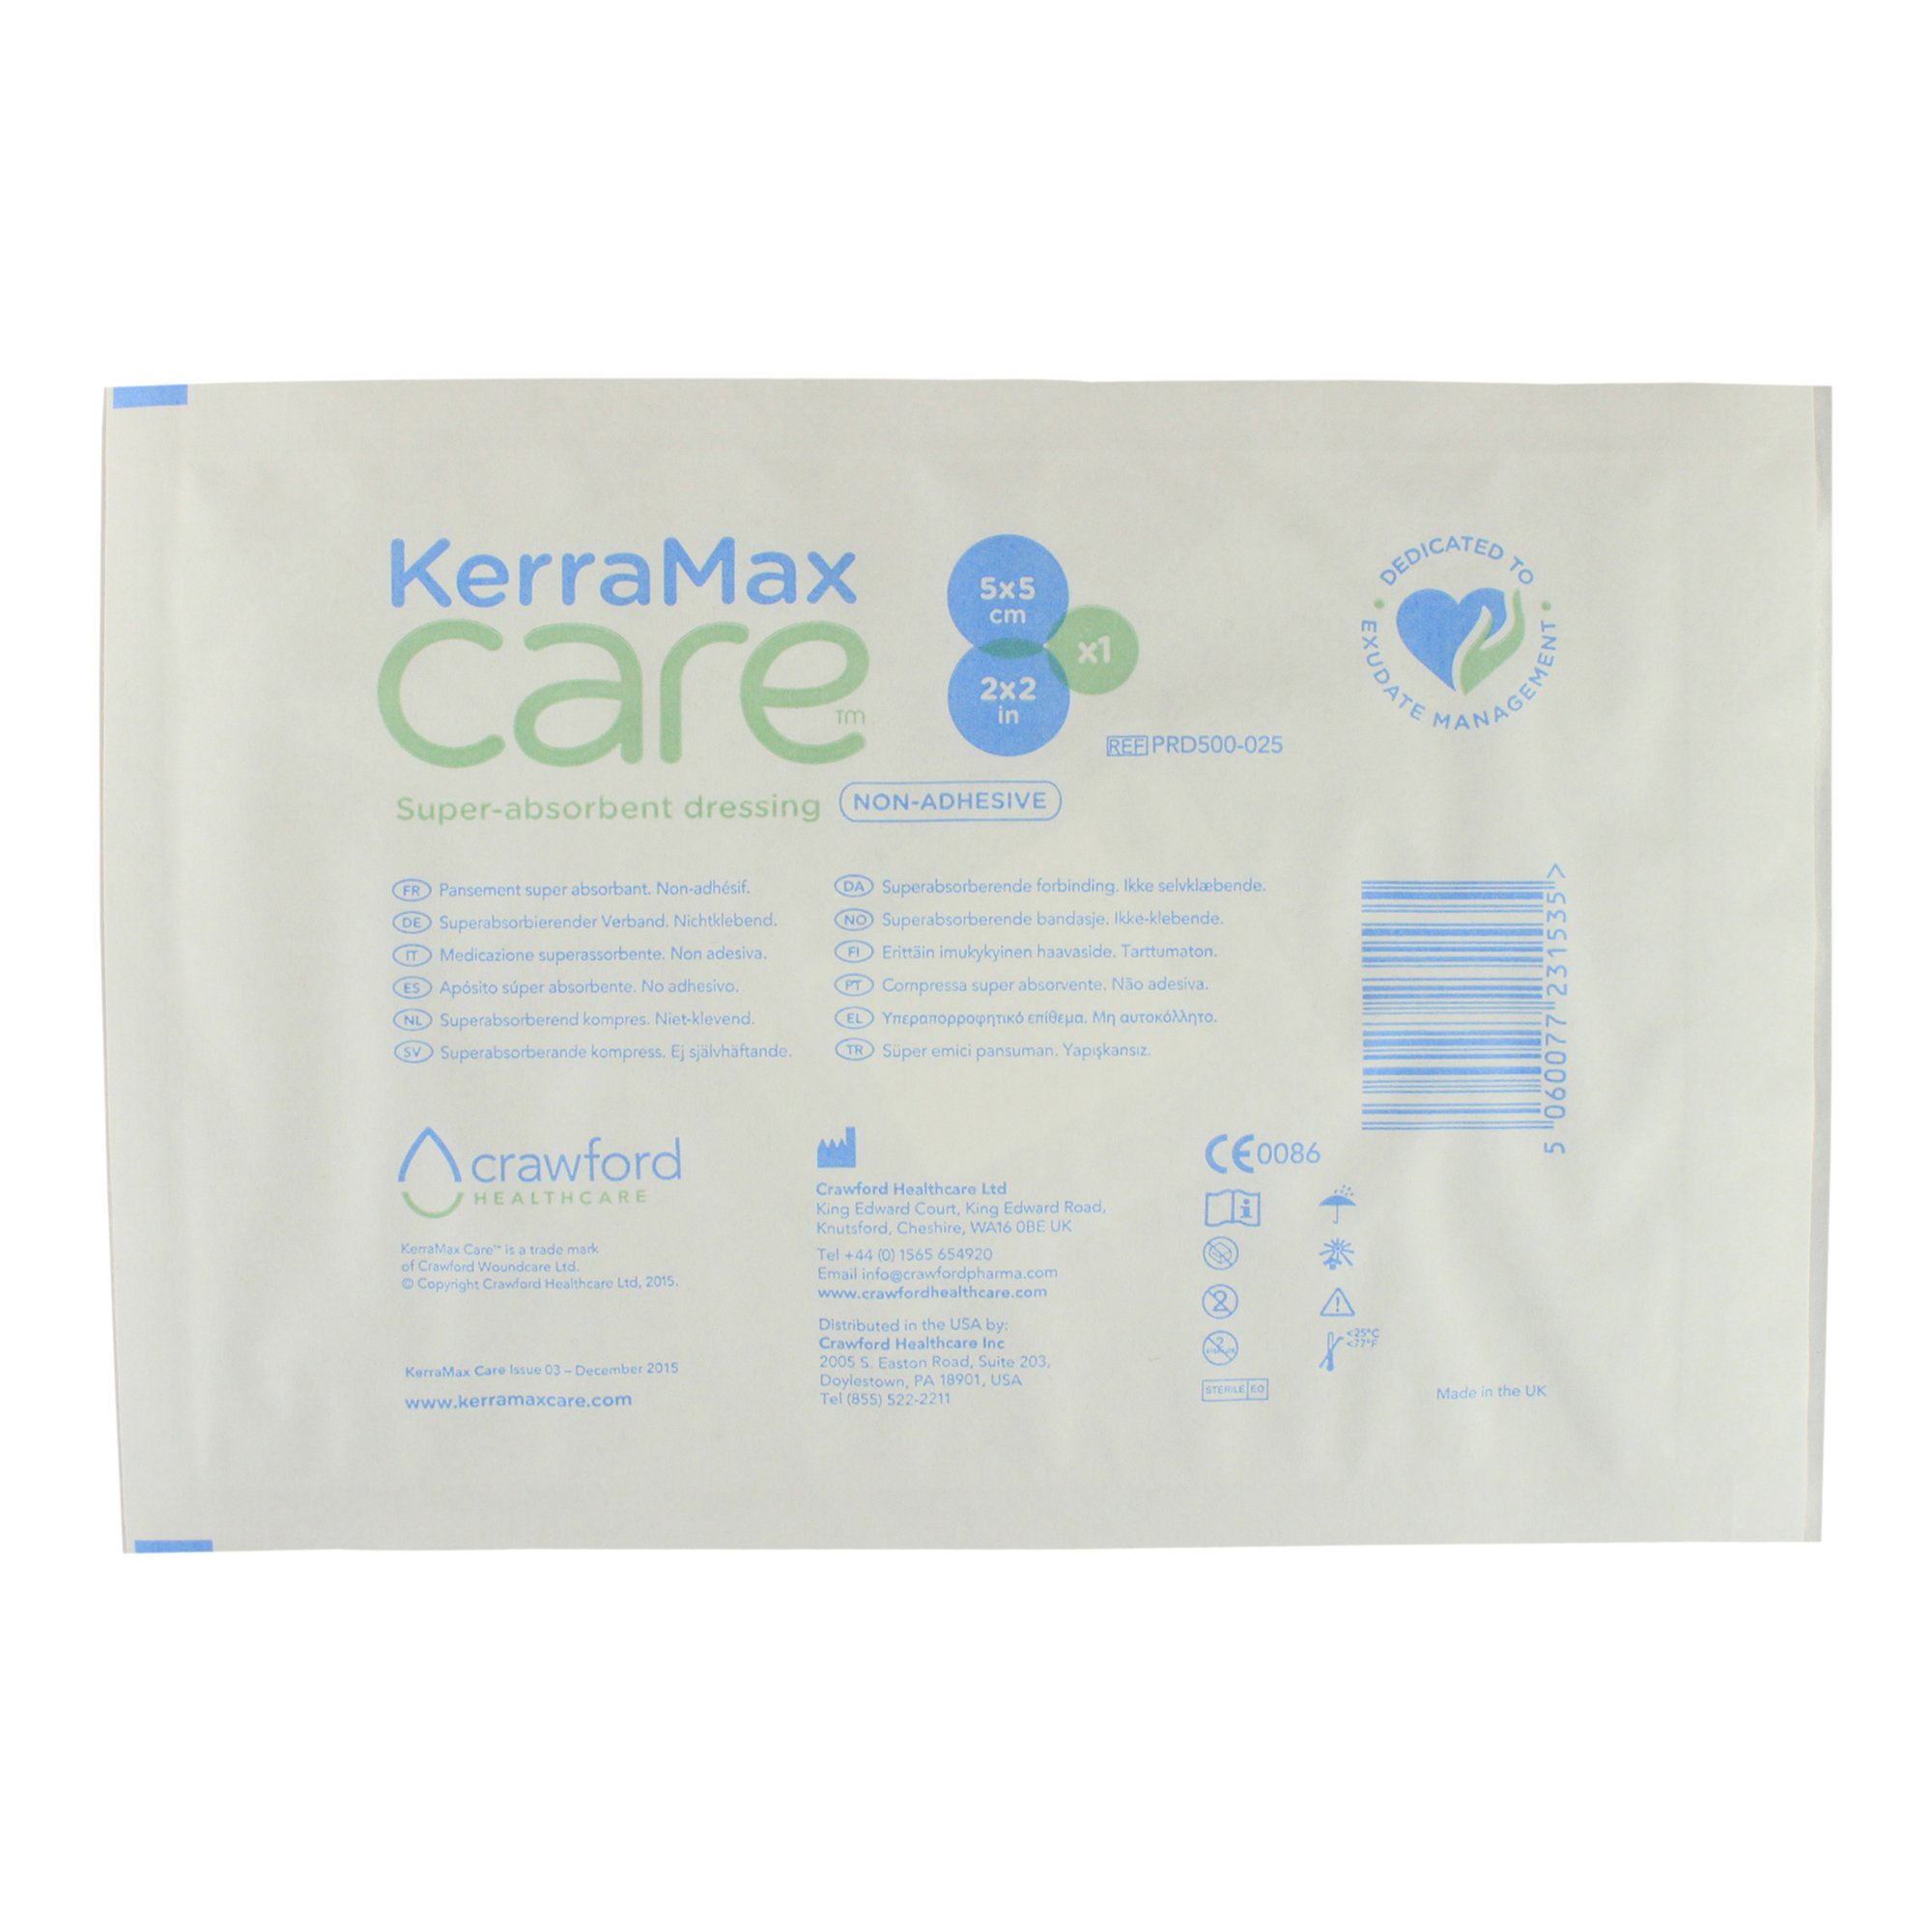 KerraMax Care 2''x2'' Super Absorbent Wound Dressing (PRD500-025) – Absorbs Exudate and Isolates it, Preventing Leaks or Drips for Improved Patient Comfort and Wound Care Treatment (1 Each)